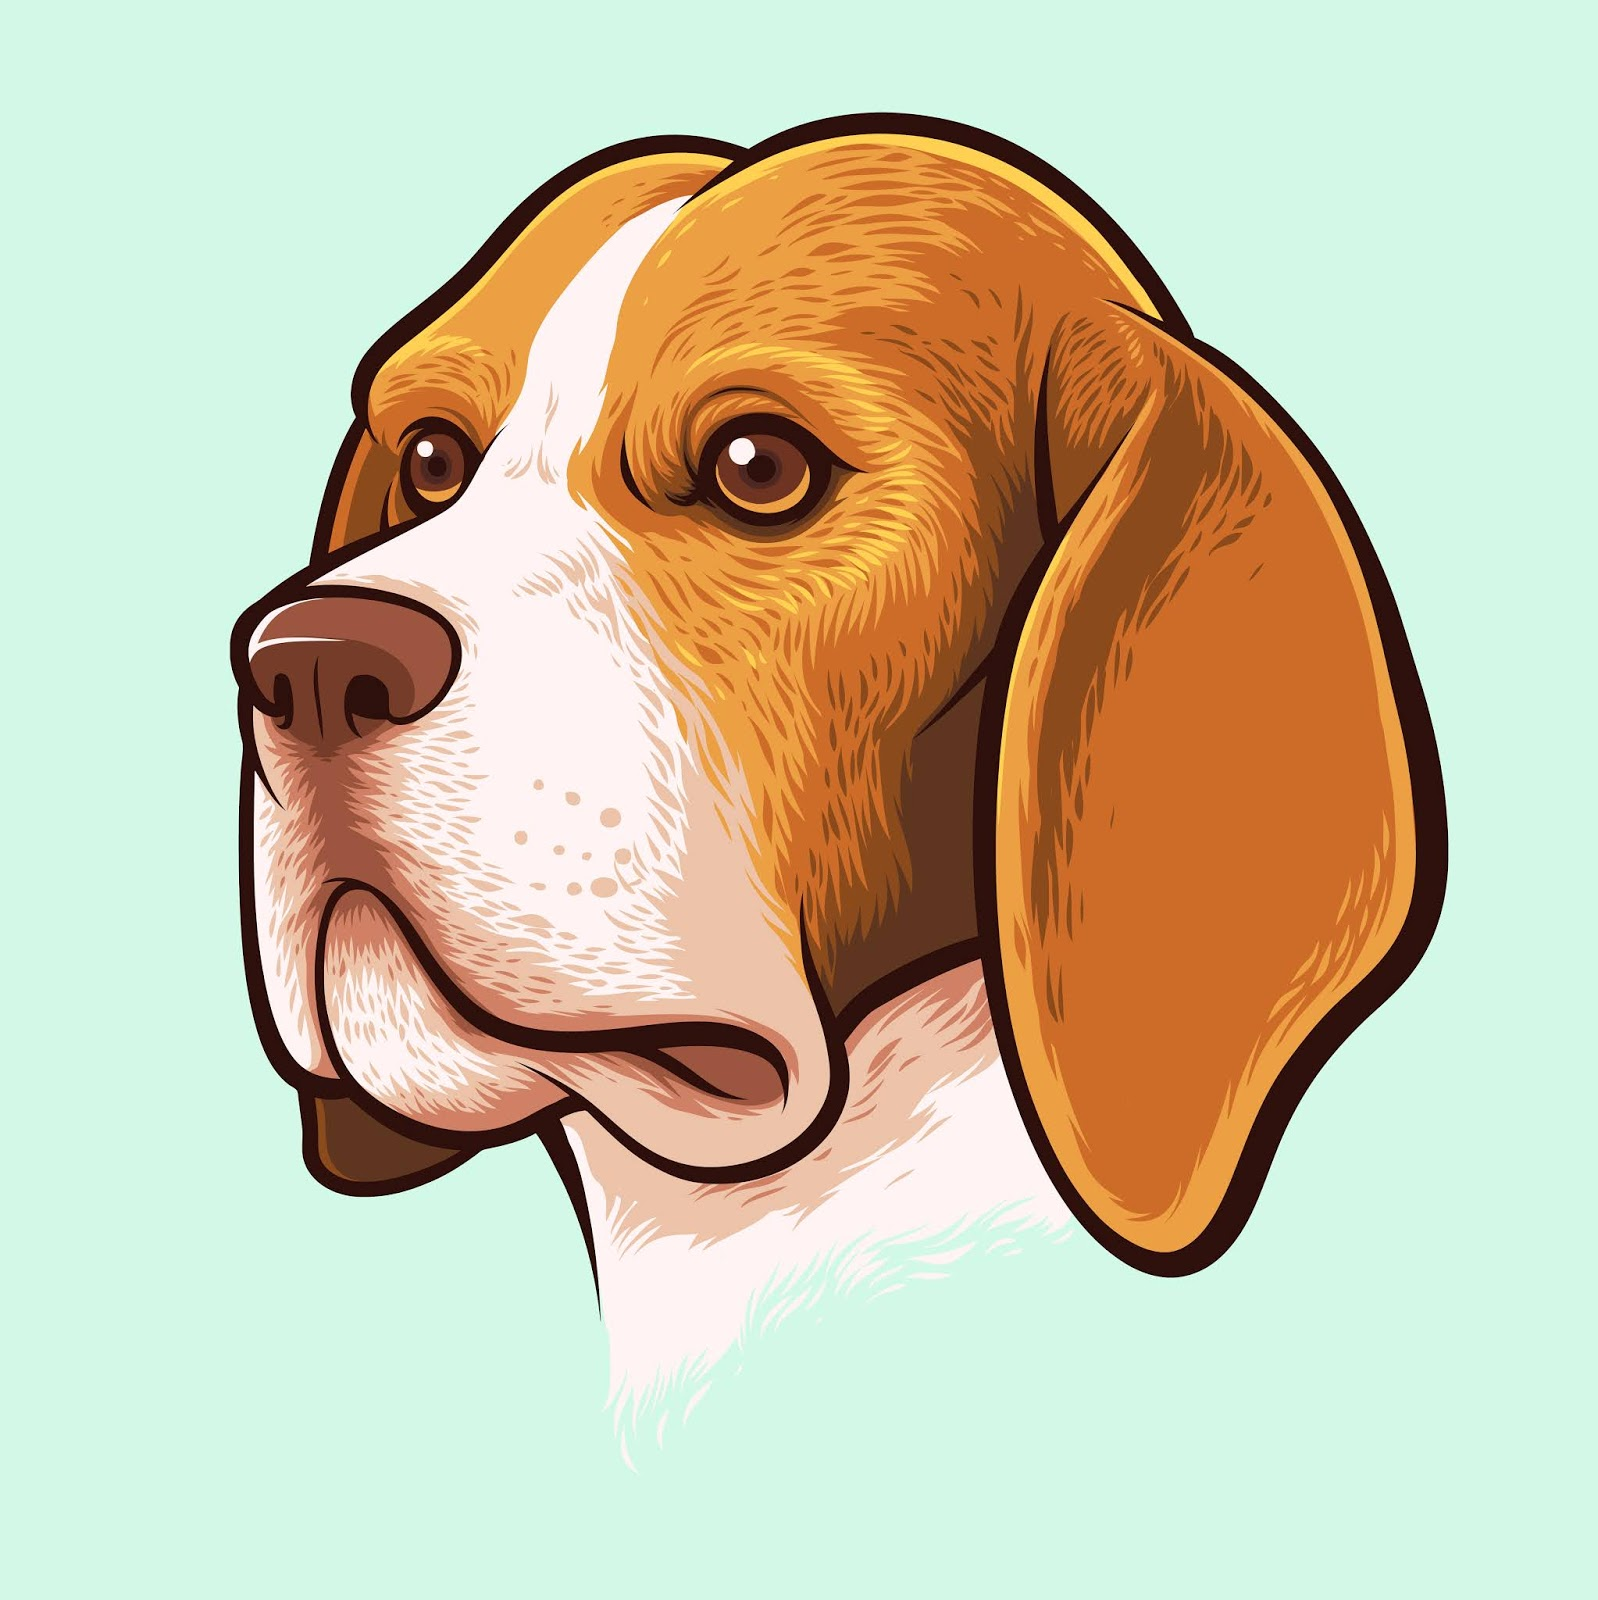 Beagle Dog Portrait.jpg Free Download Vector CDR, AI, EPS and PNG Formats